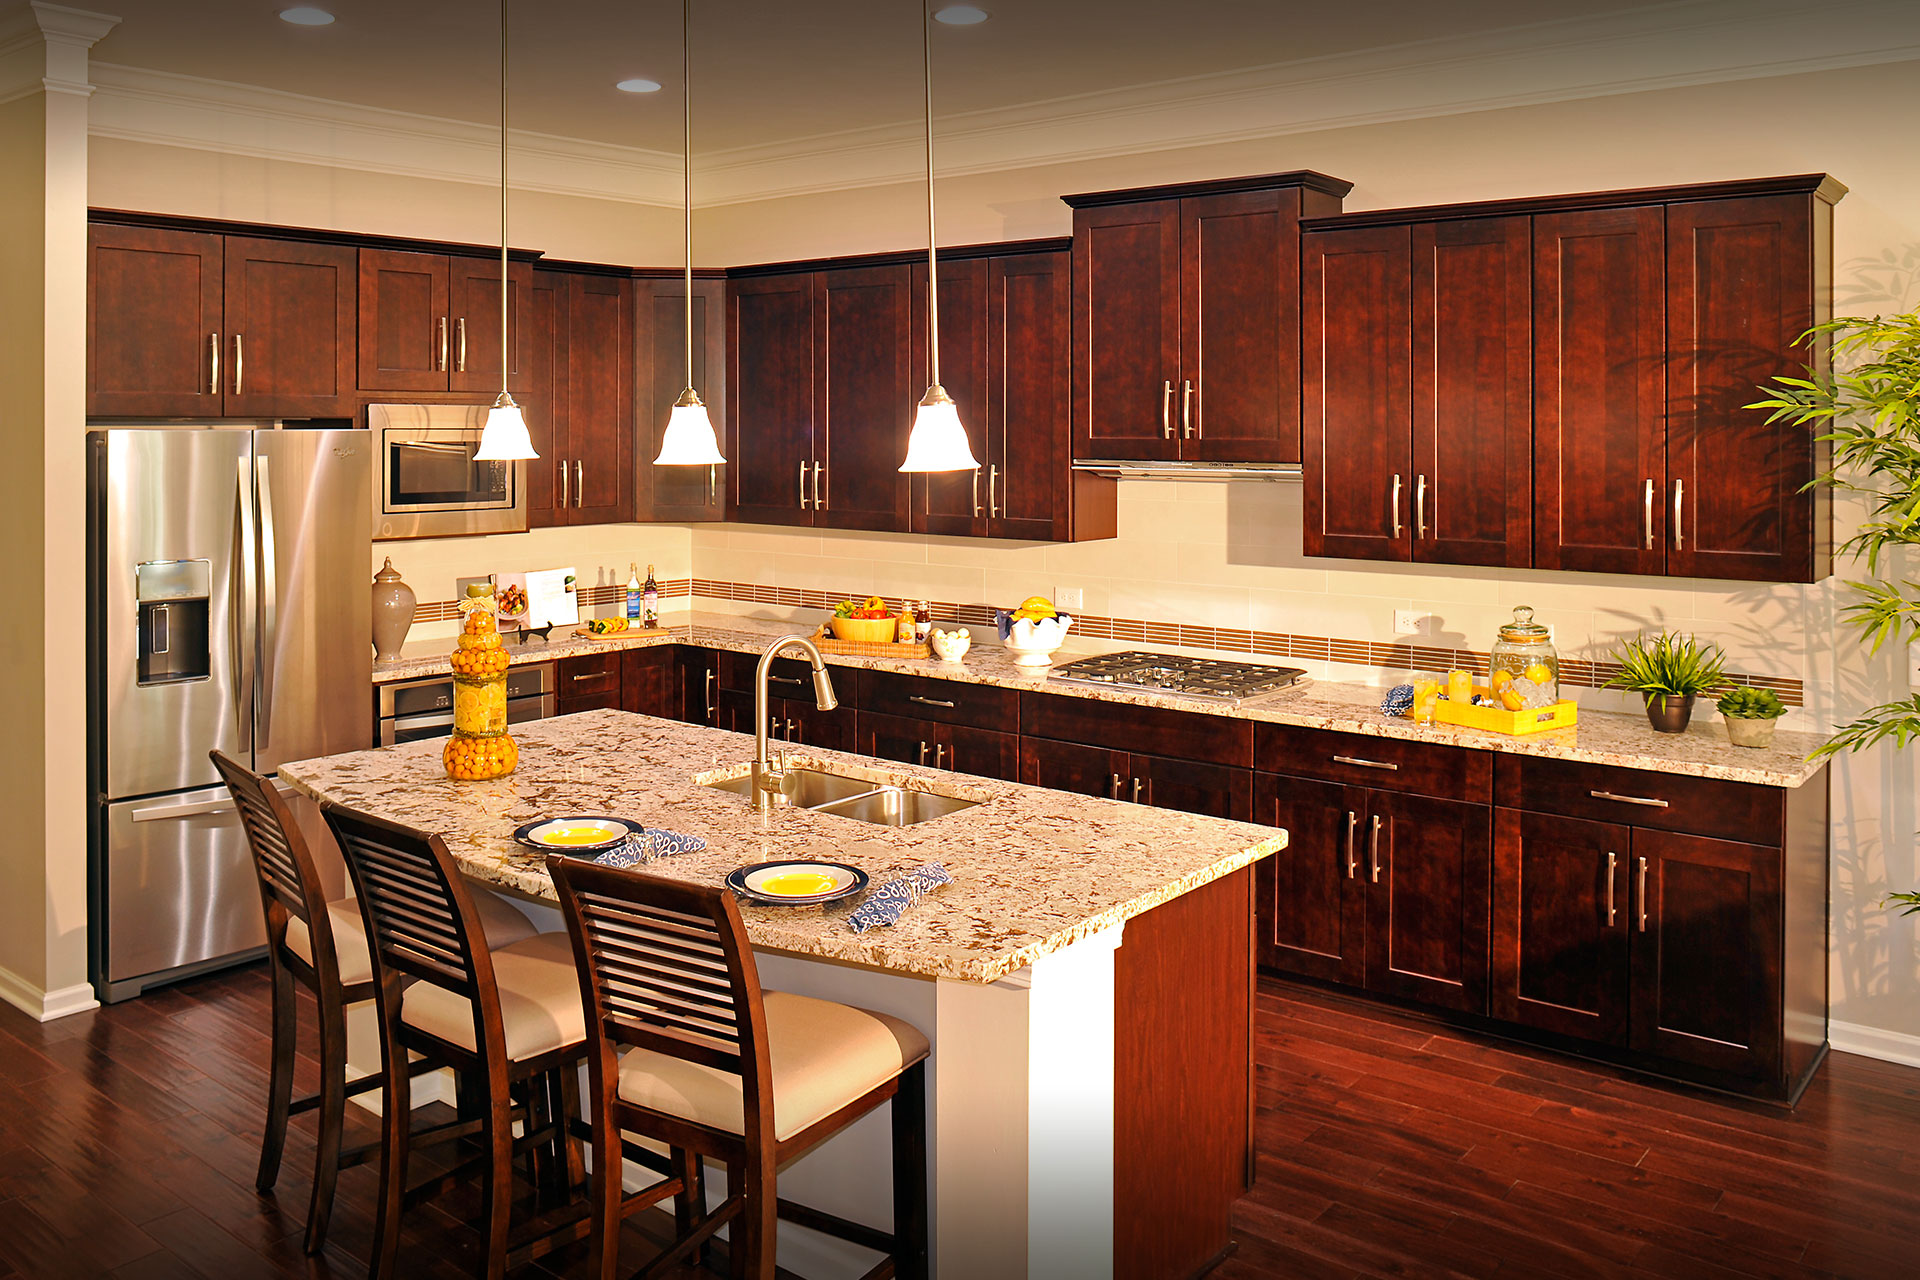 Cleveland northeast ohio drees homes for 1 kitchen cleveland ohio